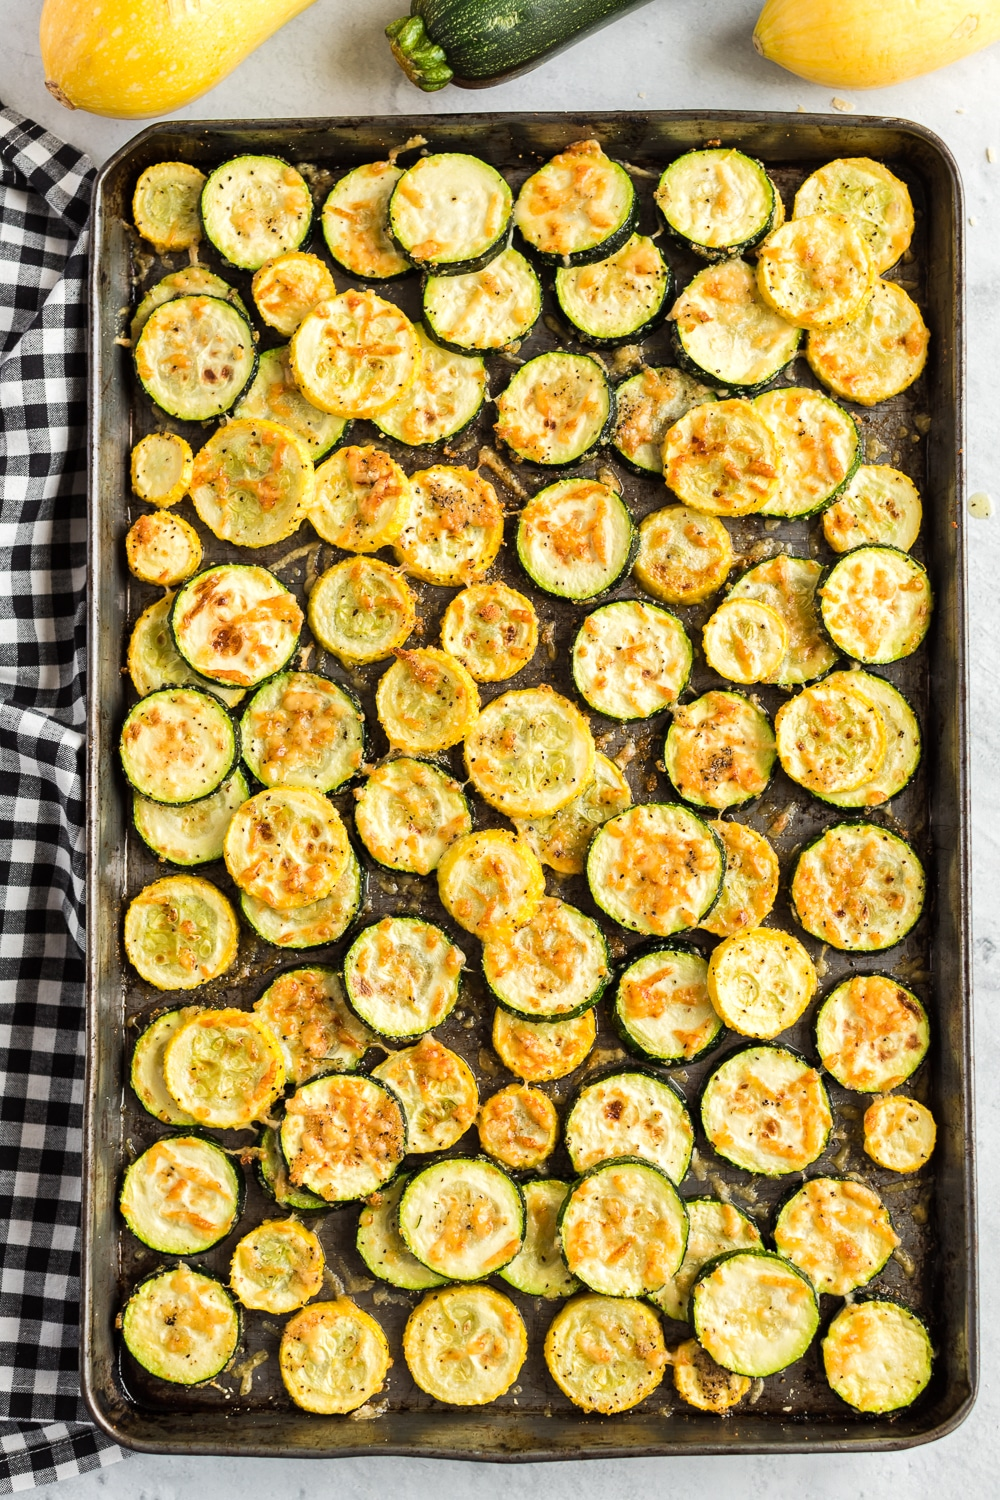 Zucchini and Squash Roasted on Baking Pan